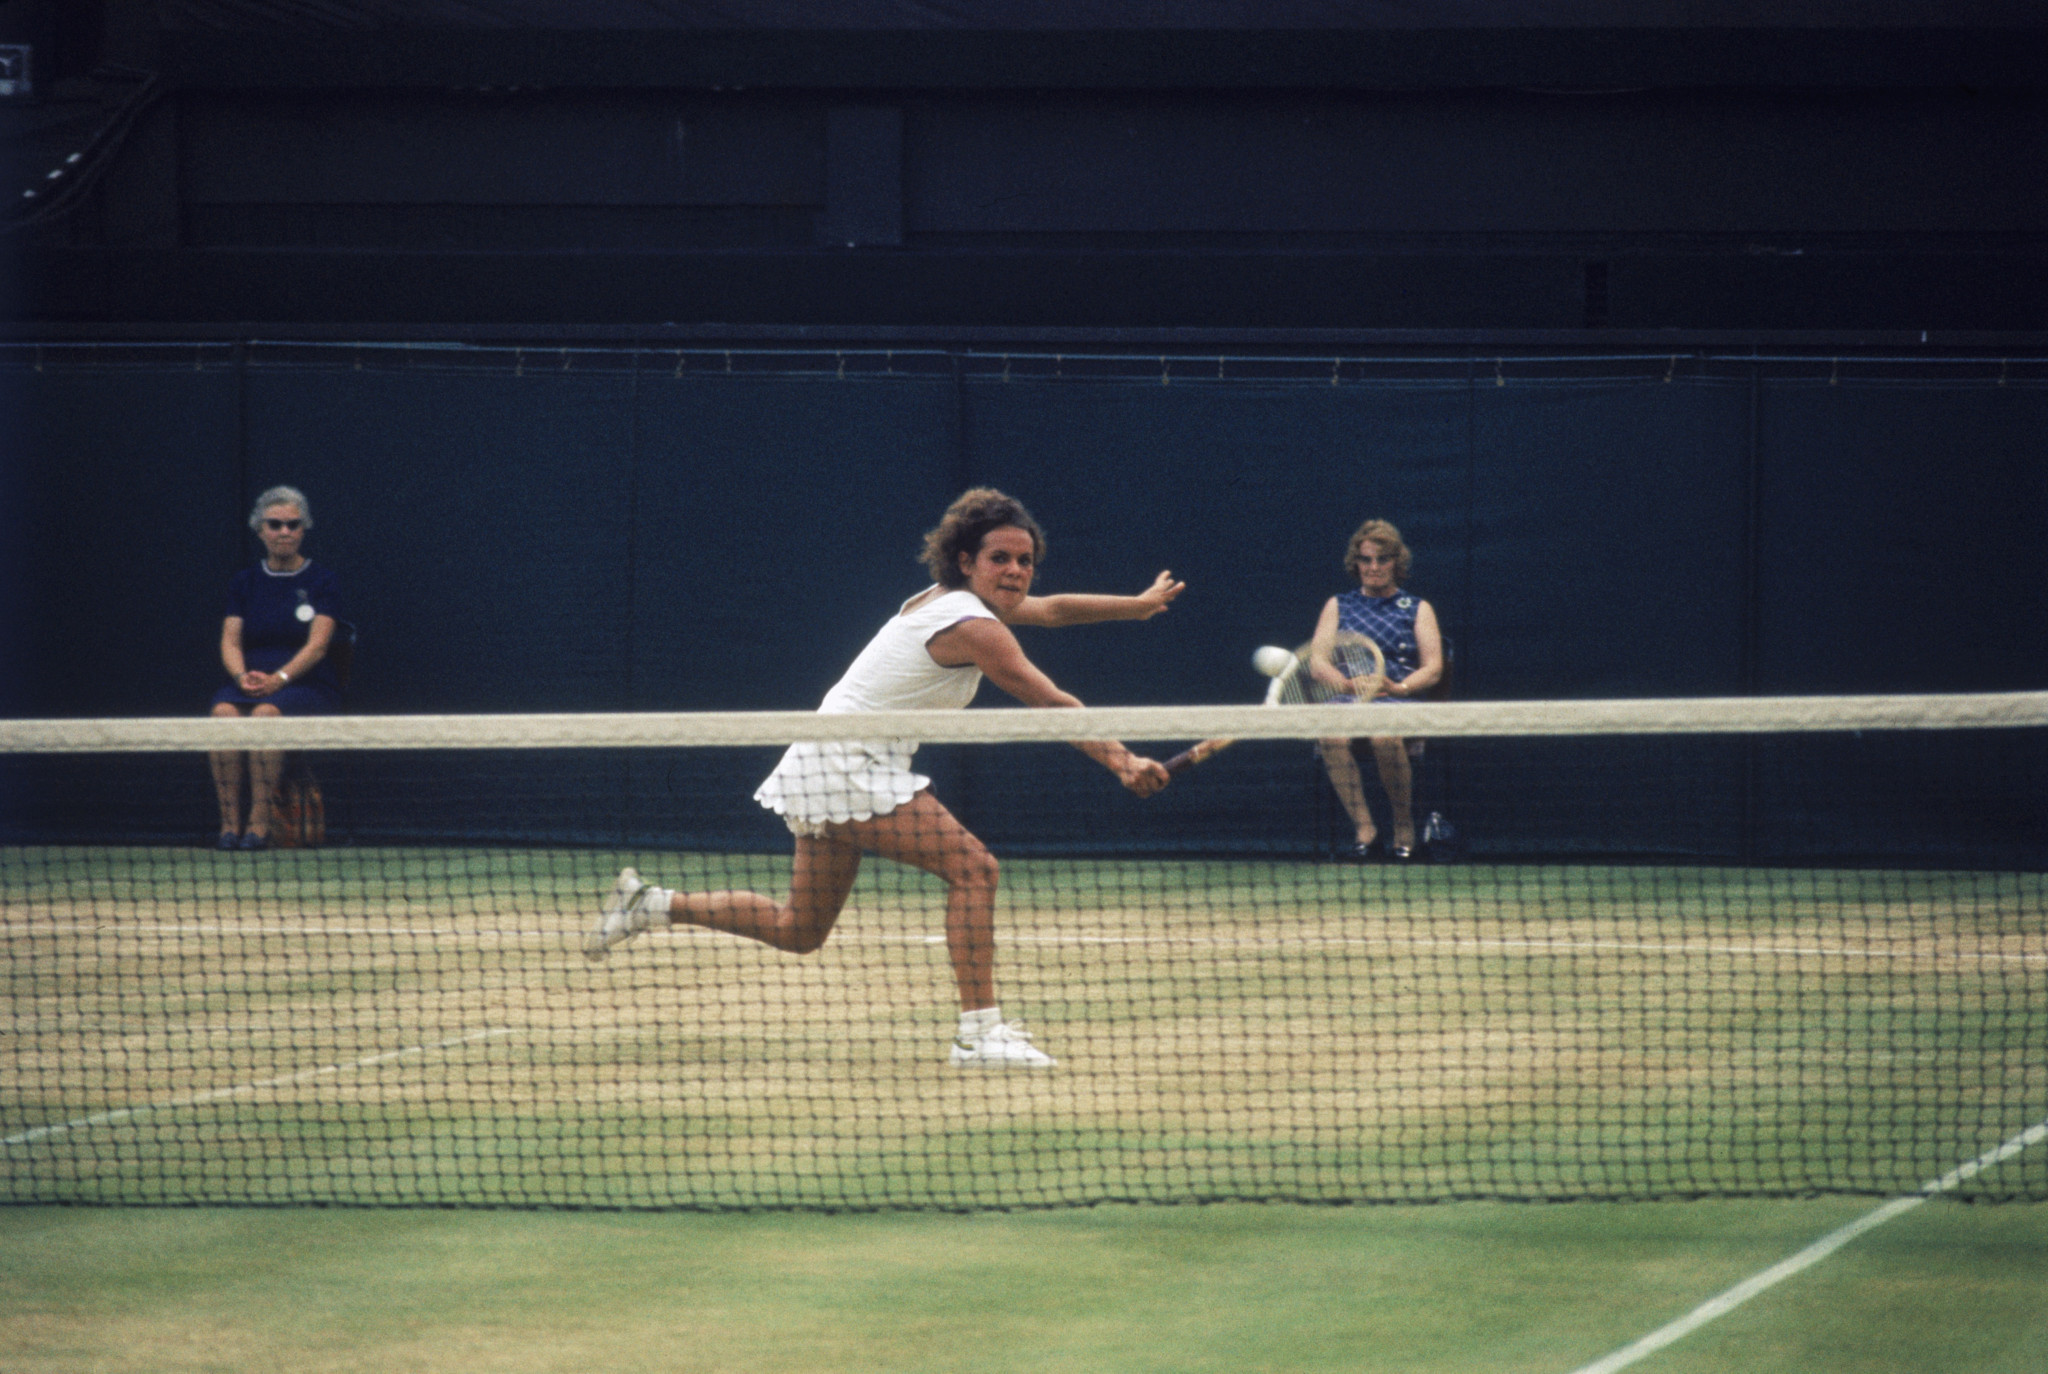 Evonne Goolagong Cawley is a two-time Wimbledon champion ©Getty Images